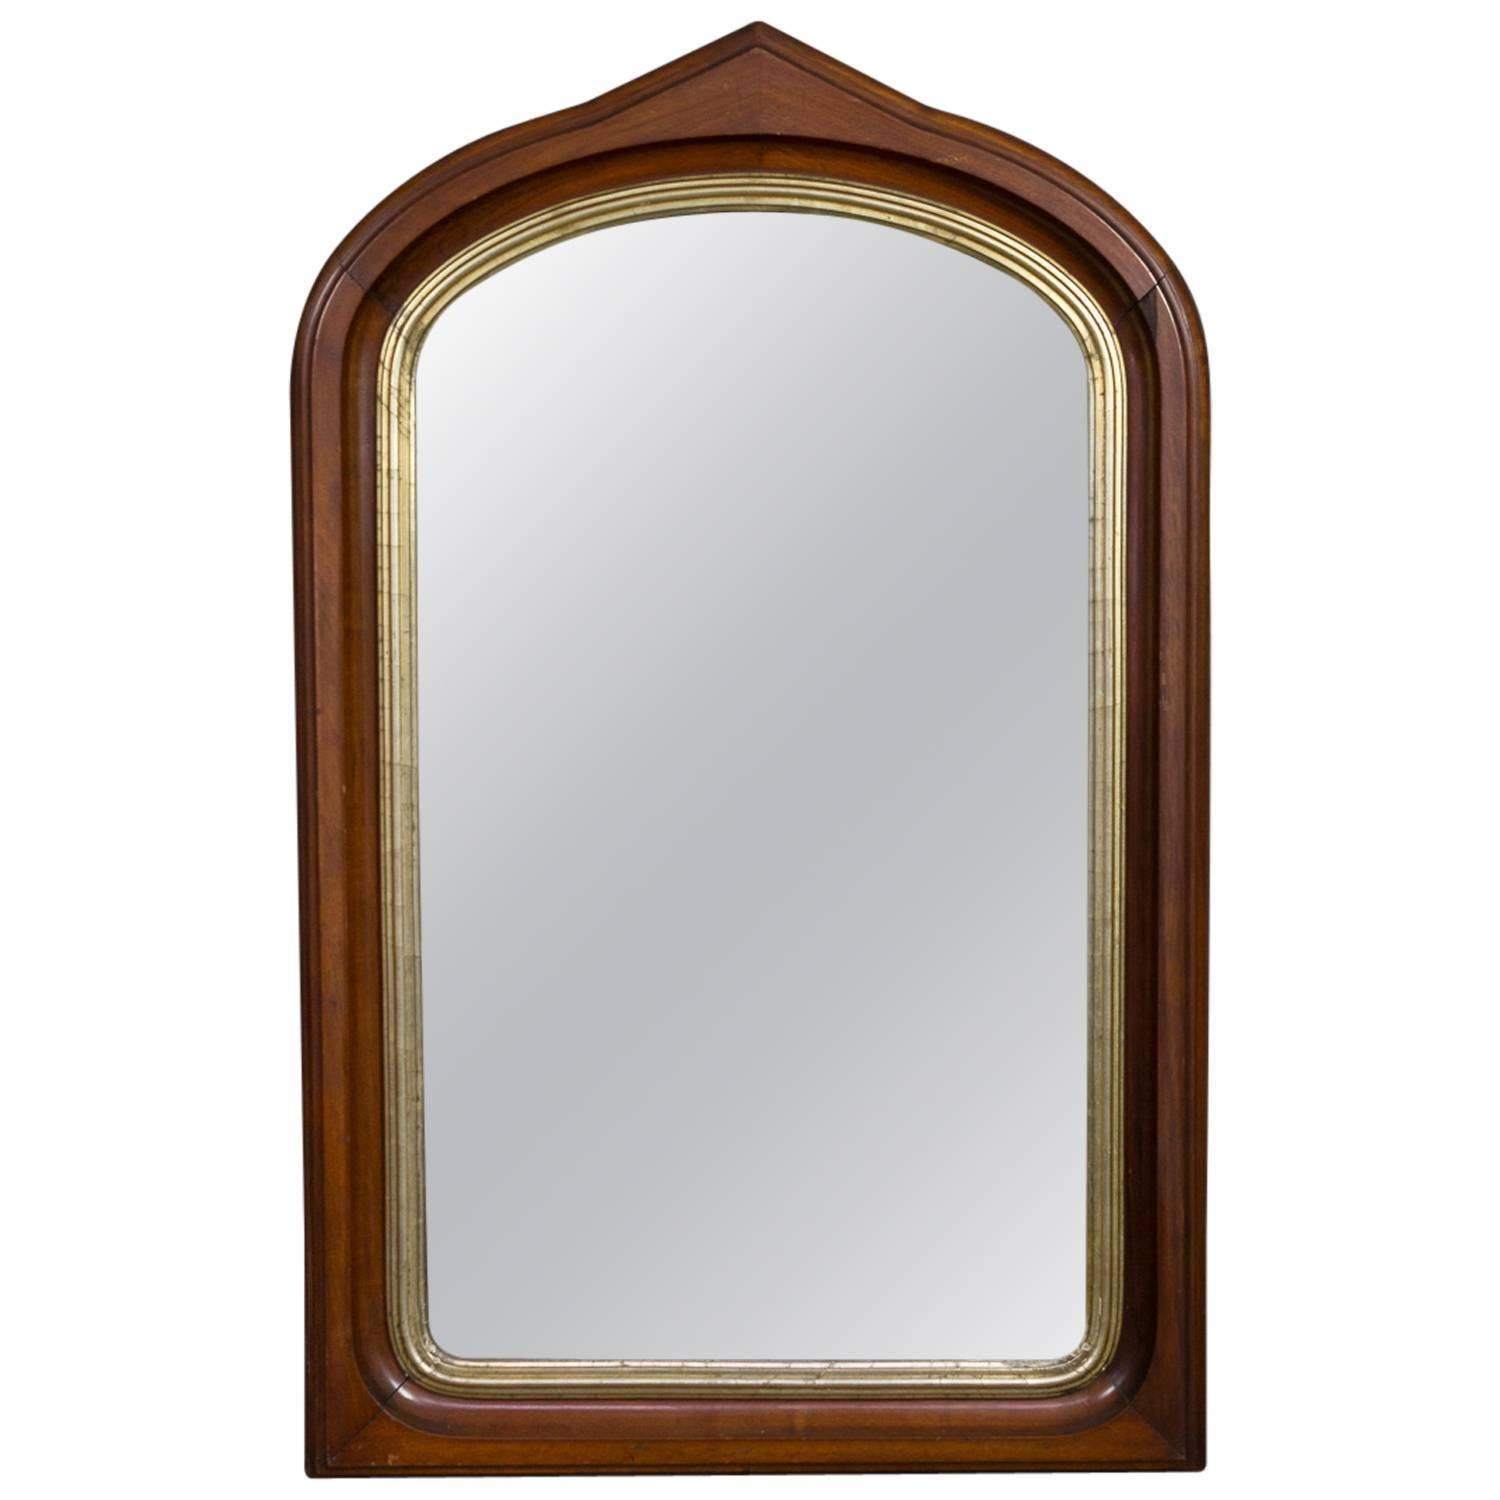 Mahogany Arched Frame Mirror With Gilt Border For Sale At 1Stdibs inside Gilt Framed Mirrors (Image 19 of 25)